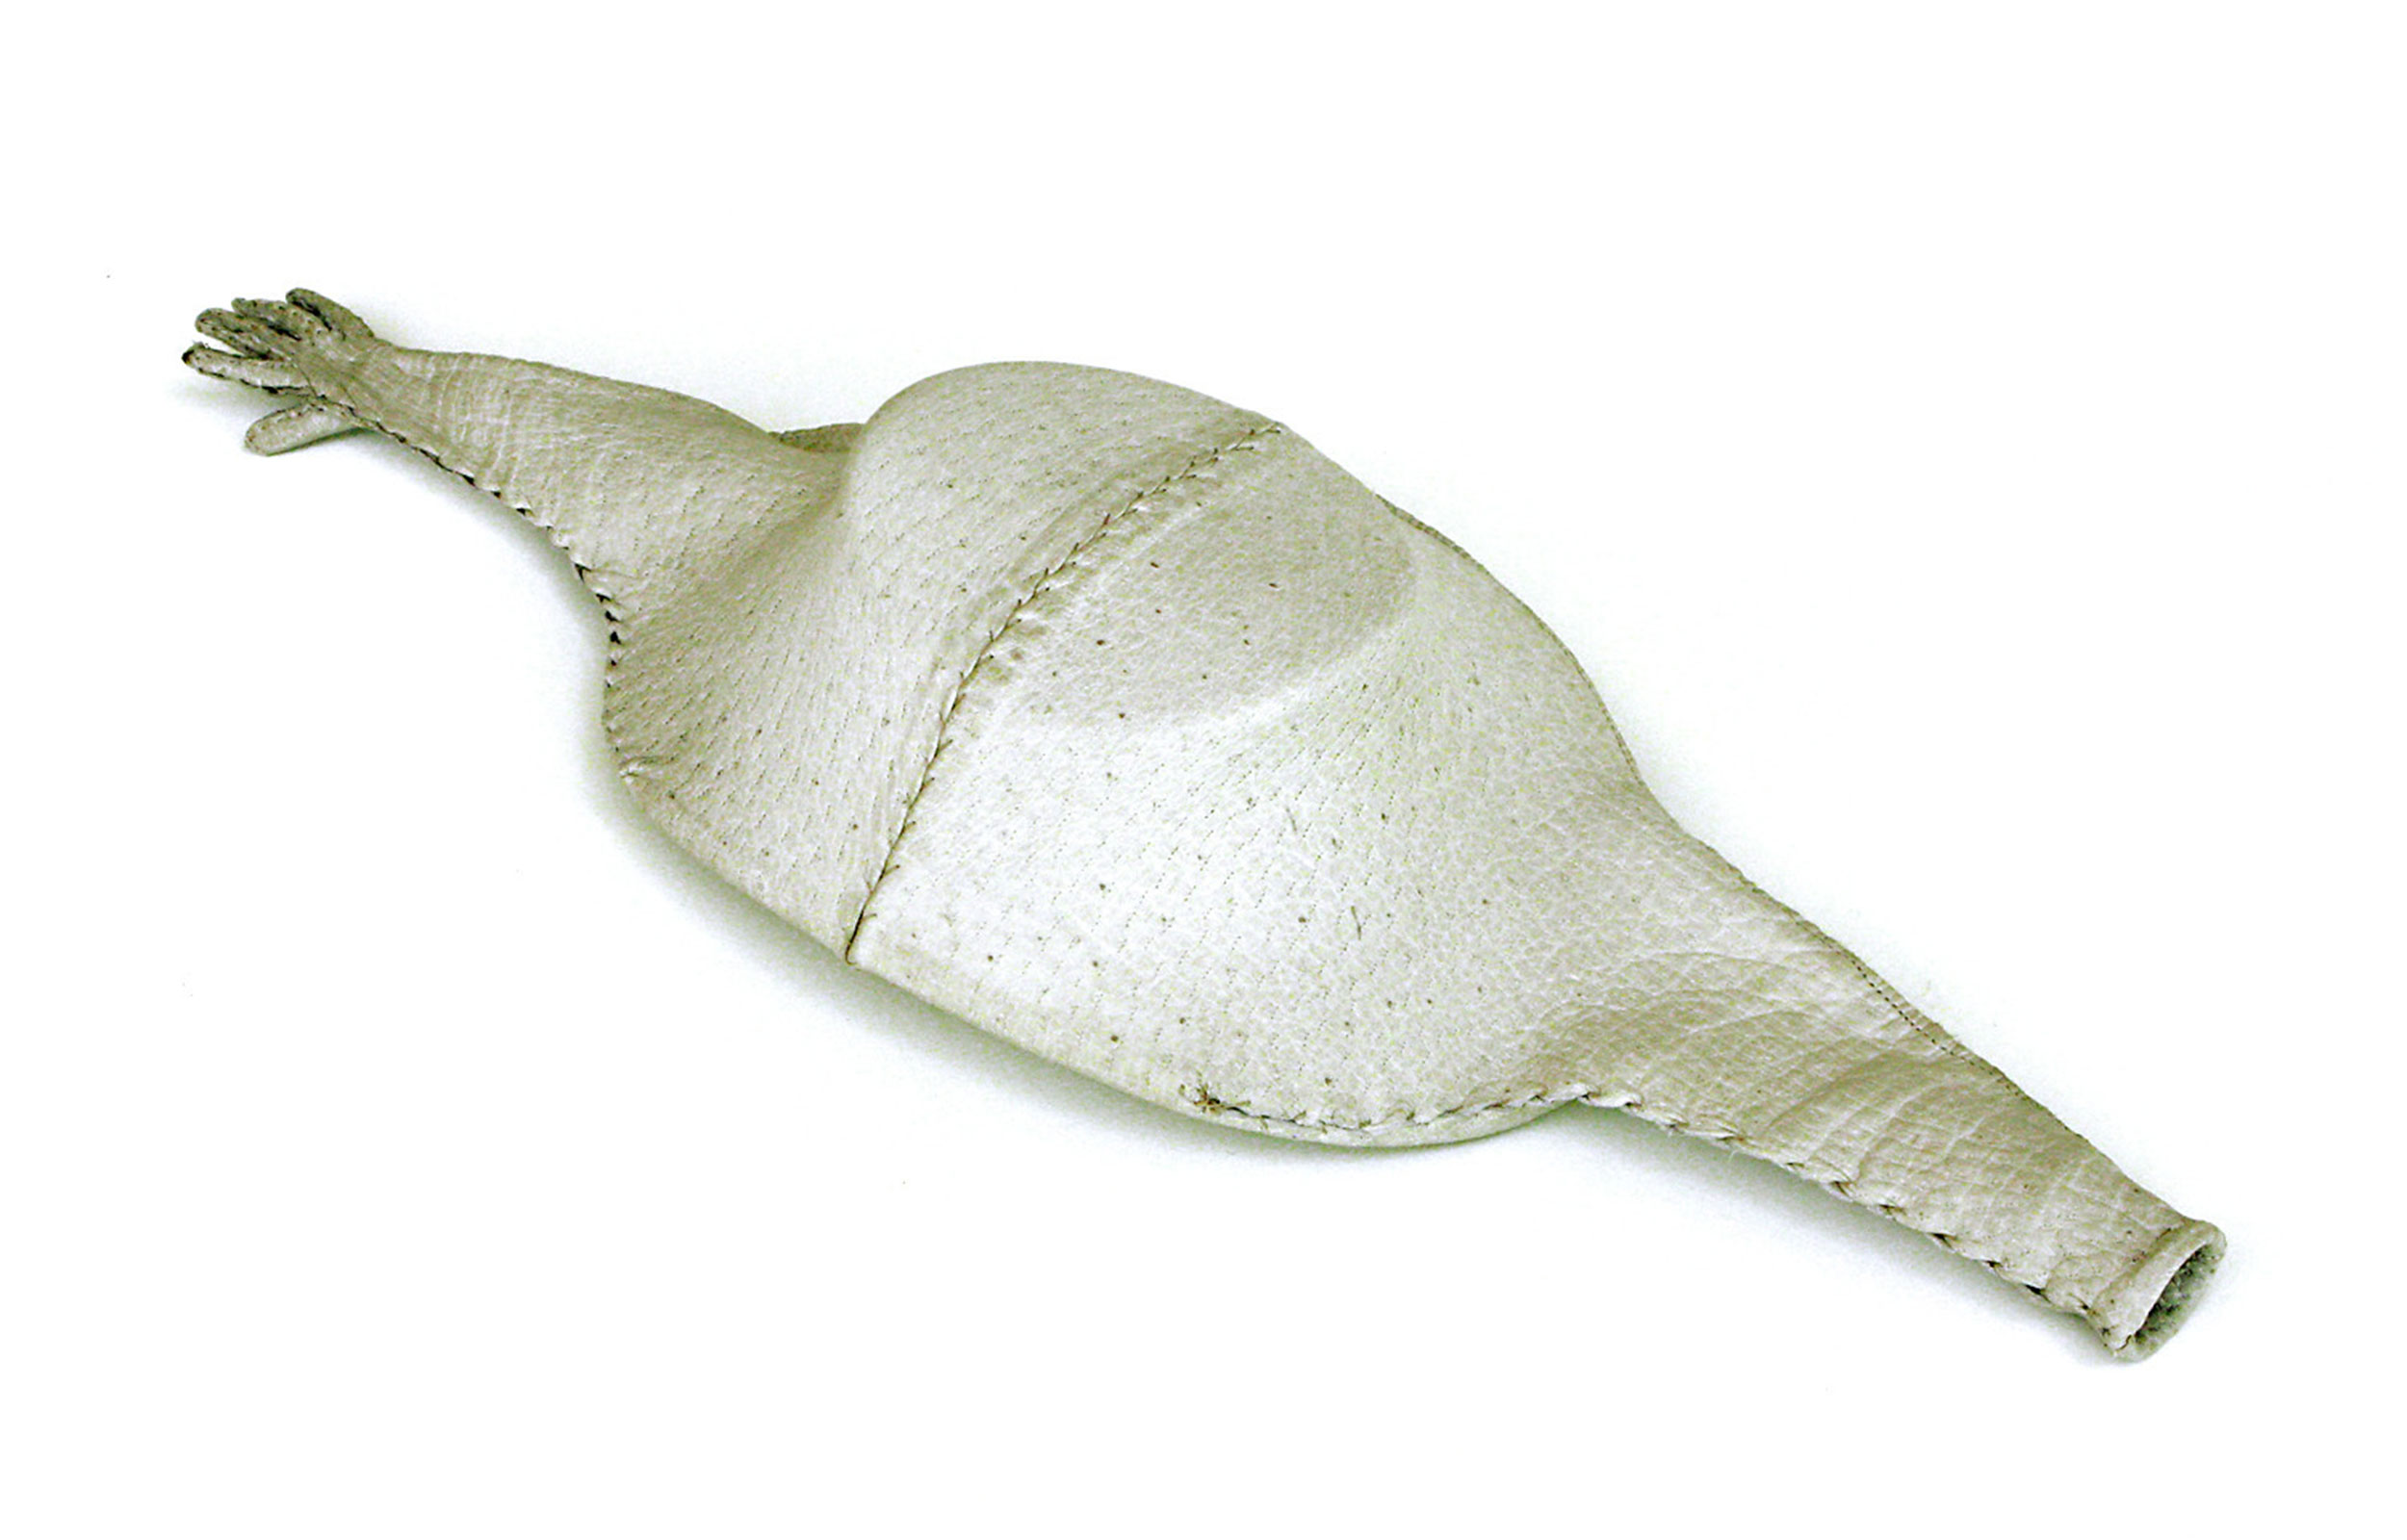 SIMPLY RAVENOUS , 2012. Glove leather, thread, Stephen's miniature wooden hat form; 4 x 12 x 6 inches